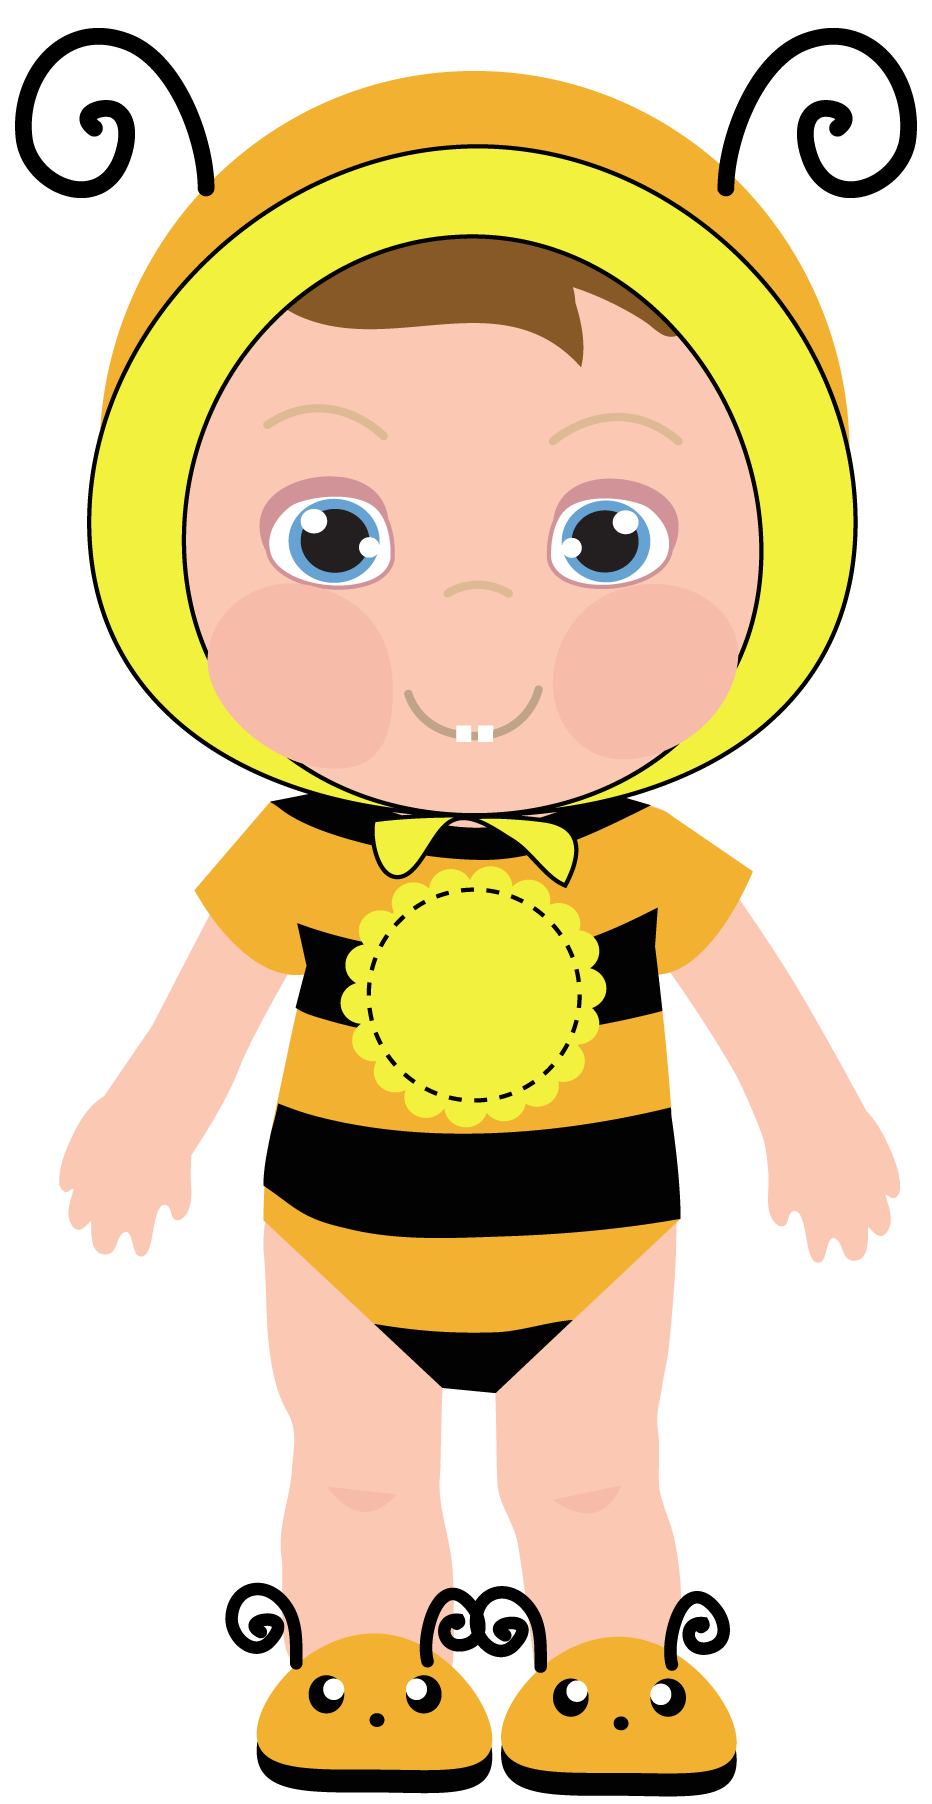 Baby girl bumblebee clipart clip art freeuse library Girl bee clipart - ClipartFest clip art freeuse library